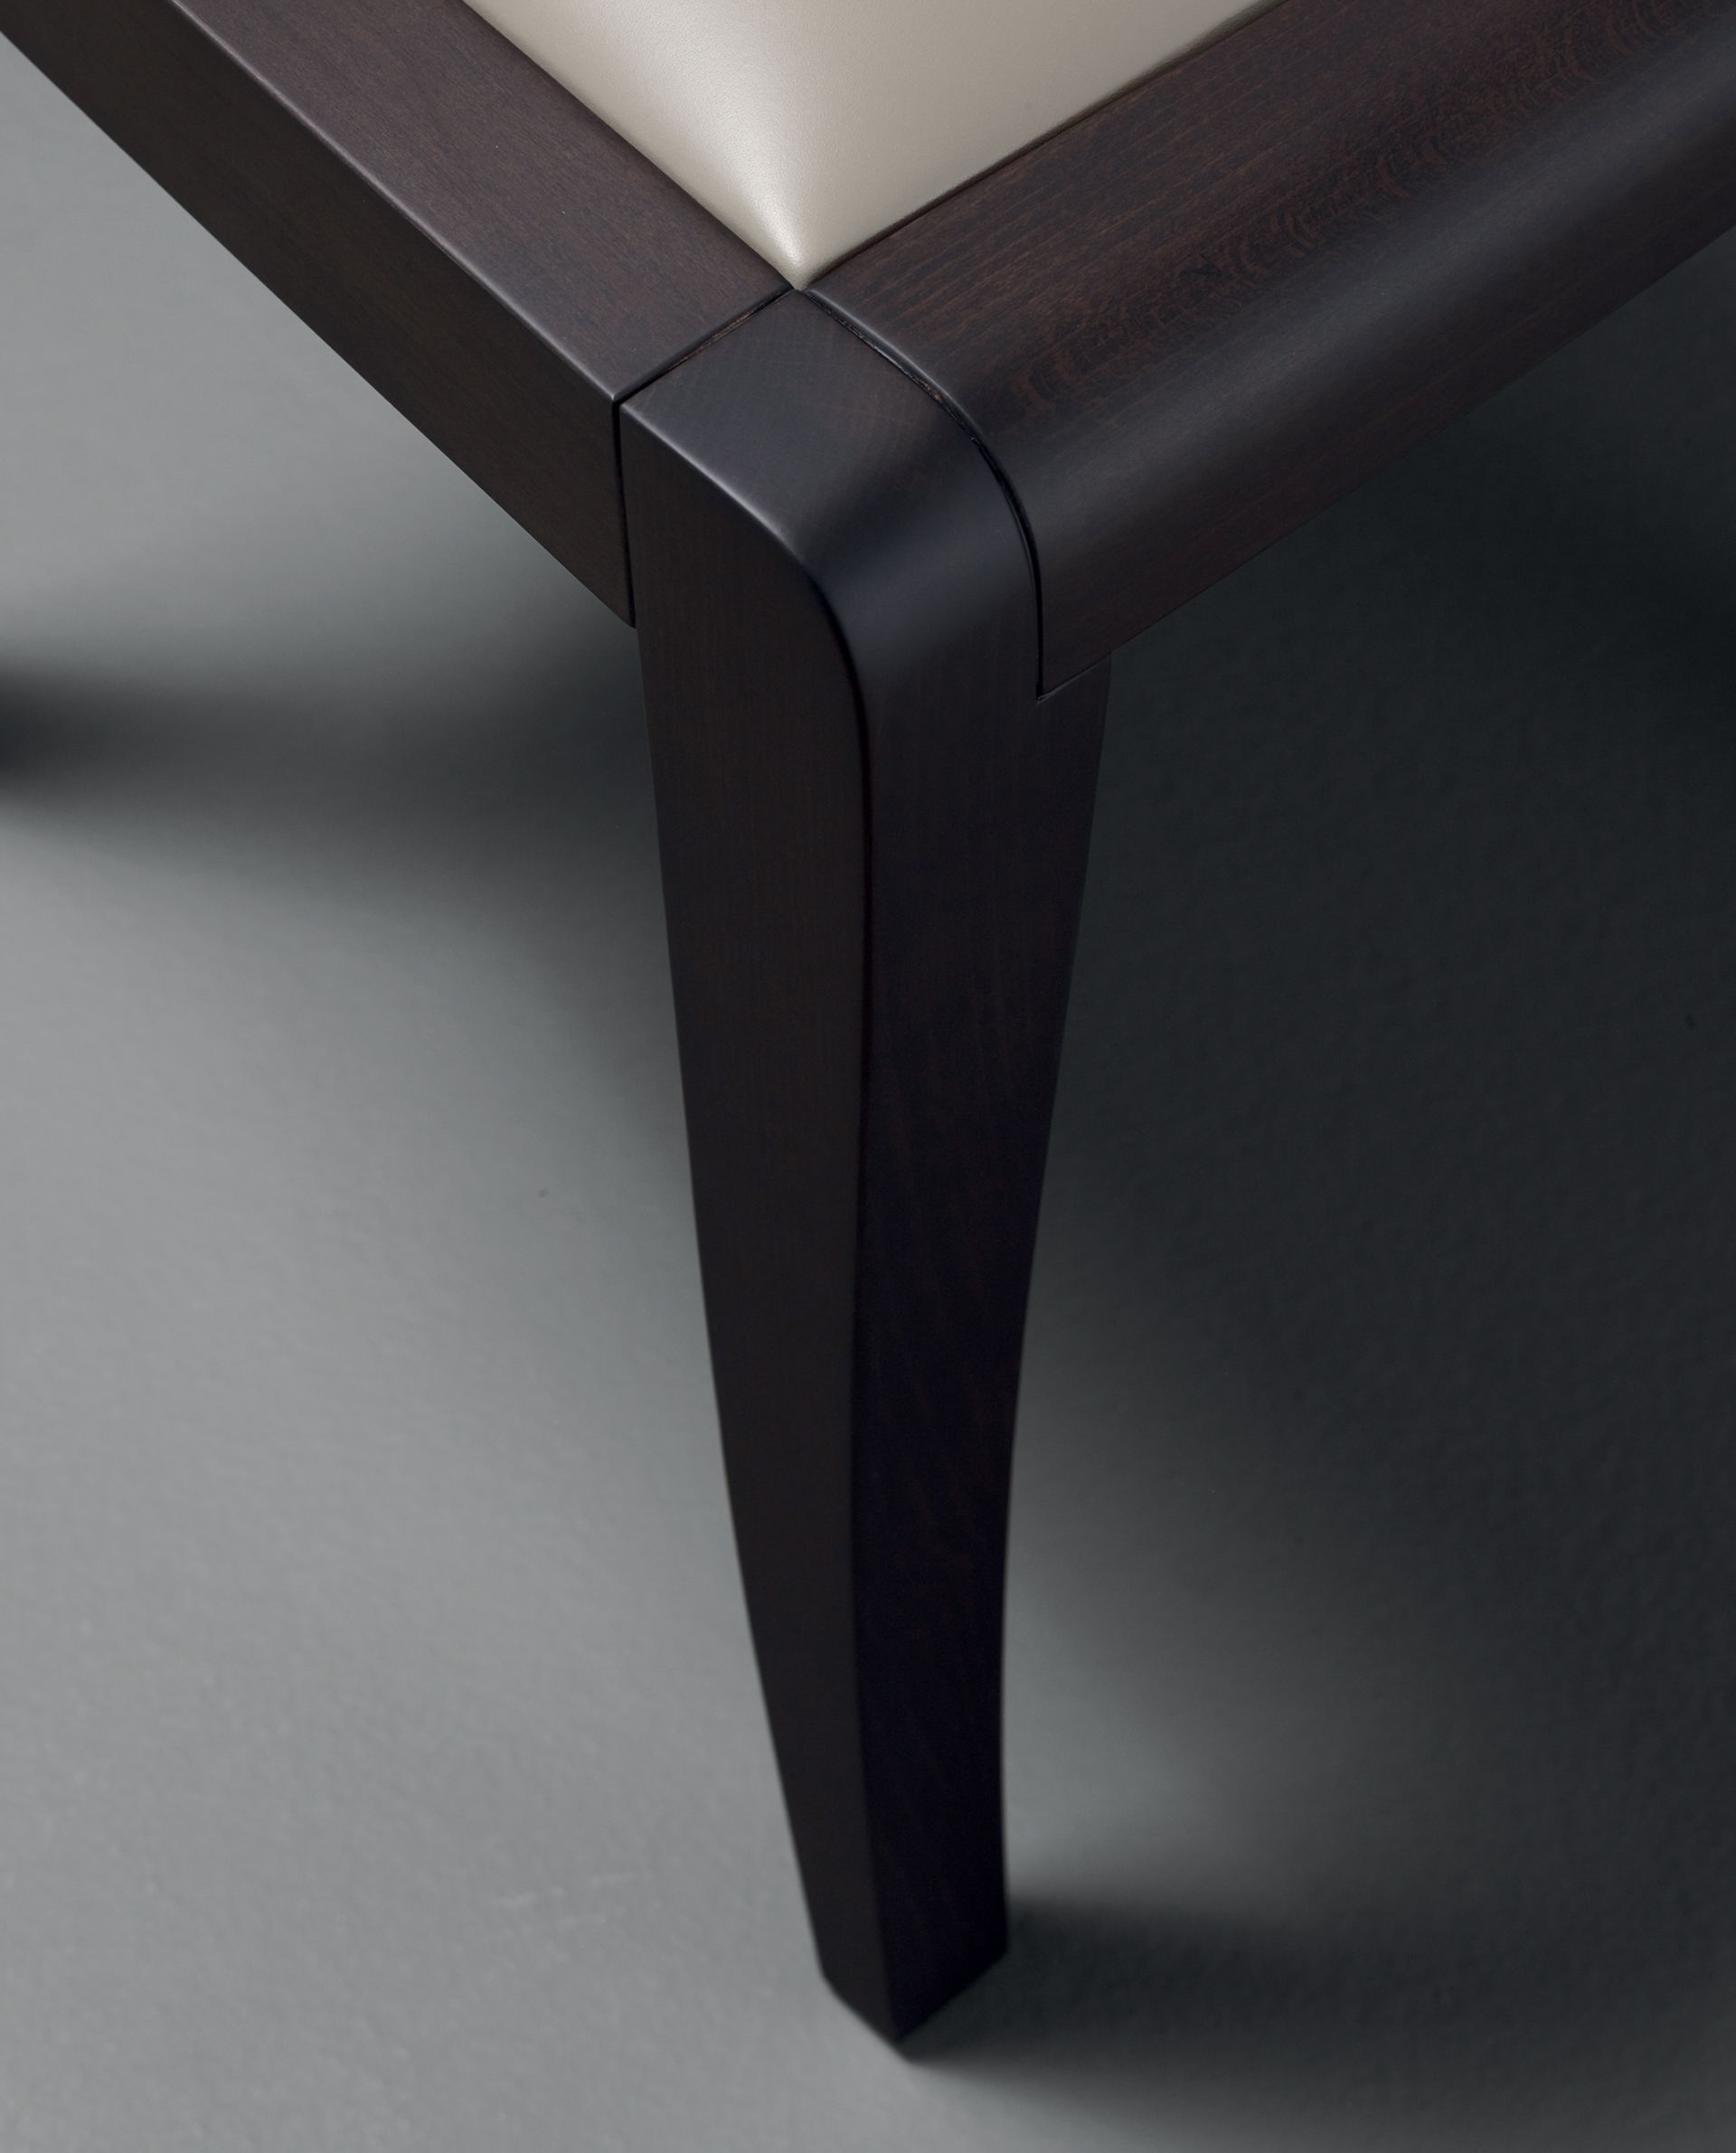 Armrest detail of Eloise, a wooden dining chair with leather seat, available with or without armrests and high or low-backed, from Promemoria's catalogue | Promemoria